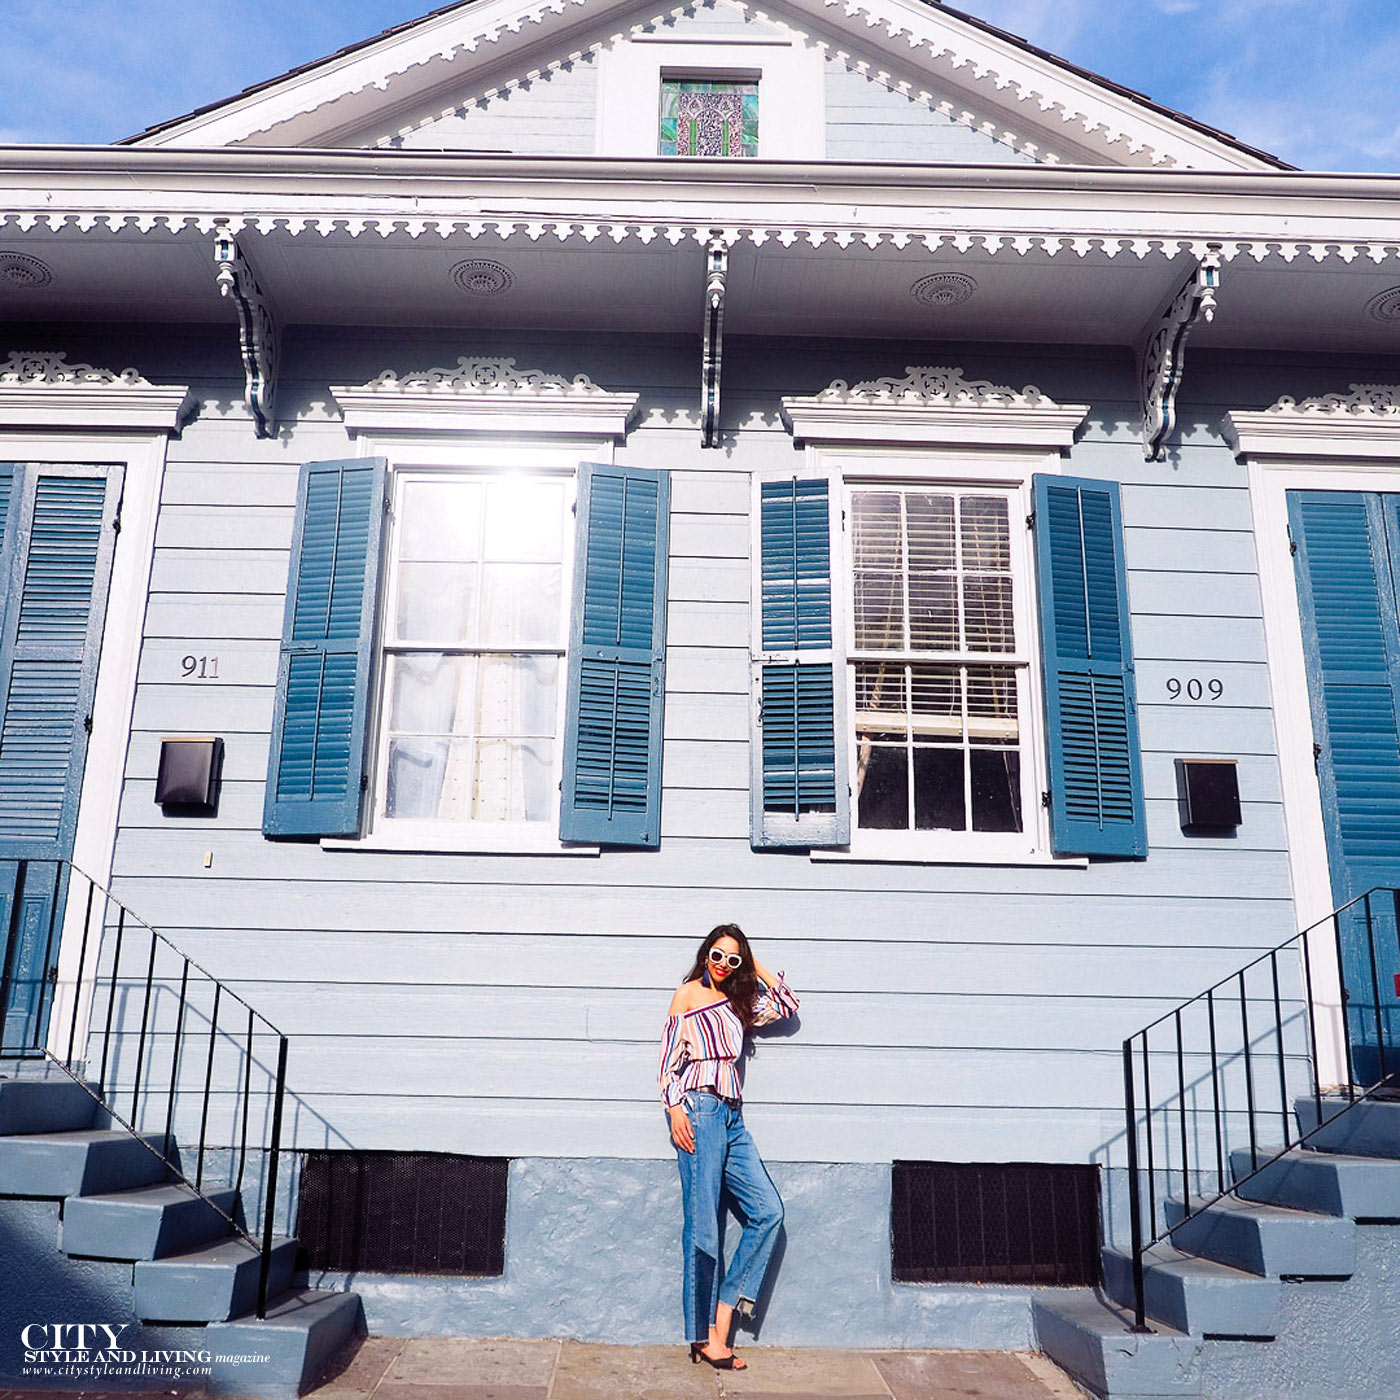 City style and living magazine The Editors Notebook style fashion blogger Shivana Maharaj New Orleans French Quarter Off shoulder top and ankle biter jeans